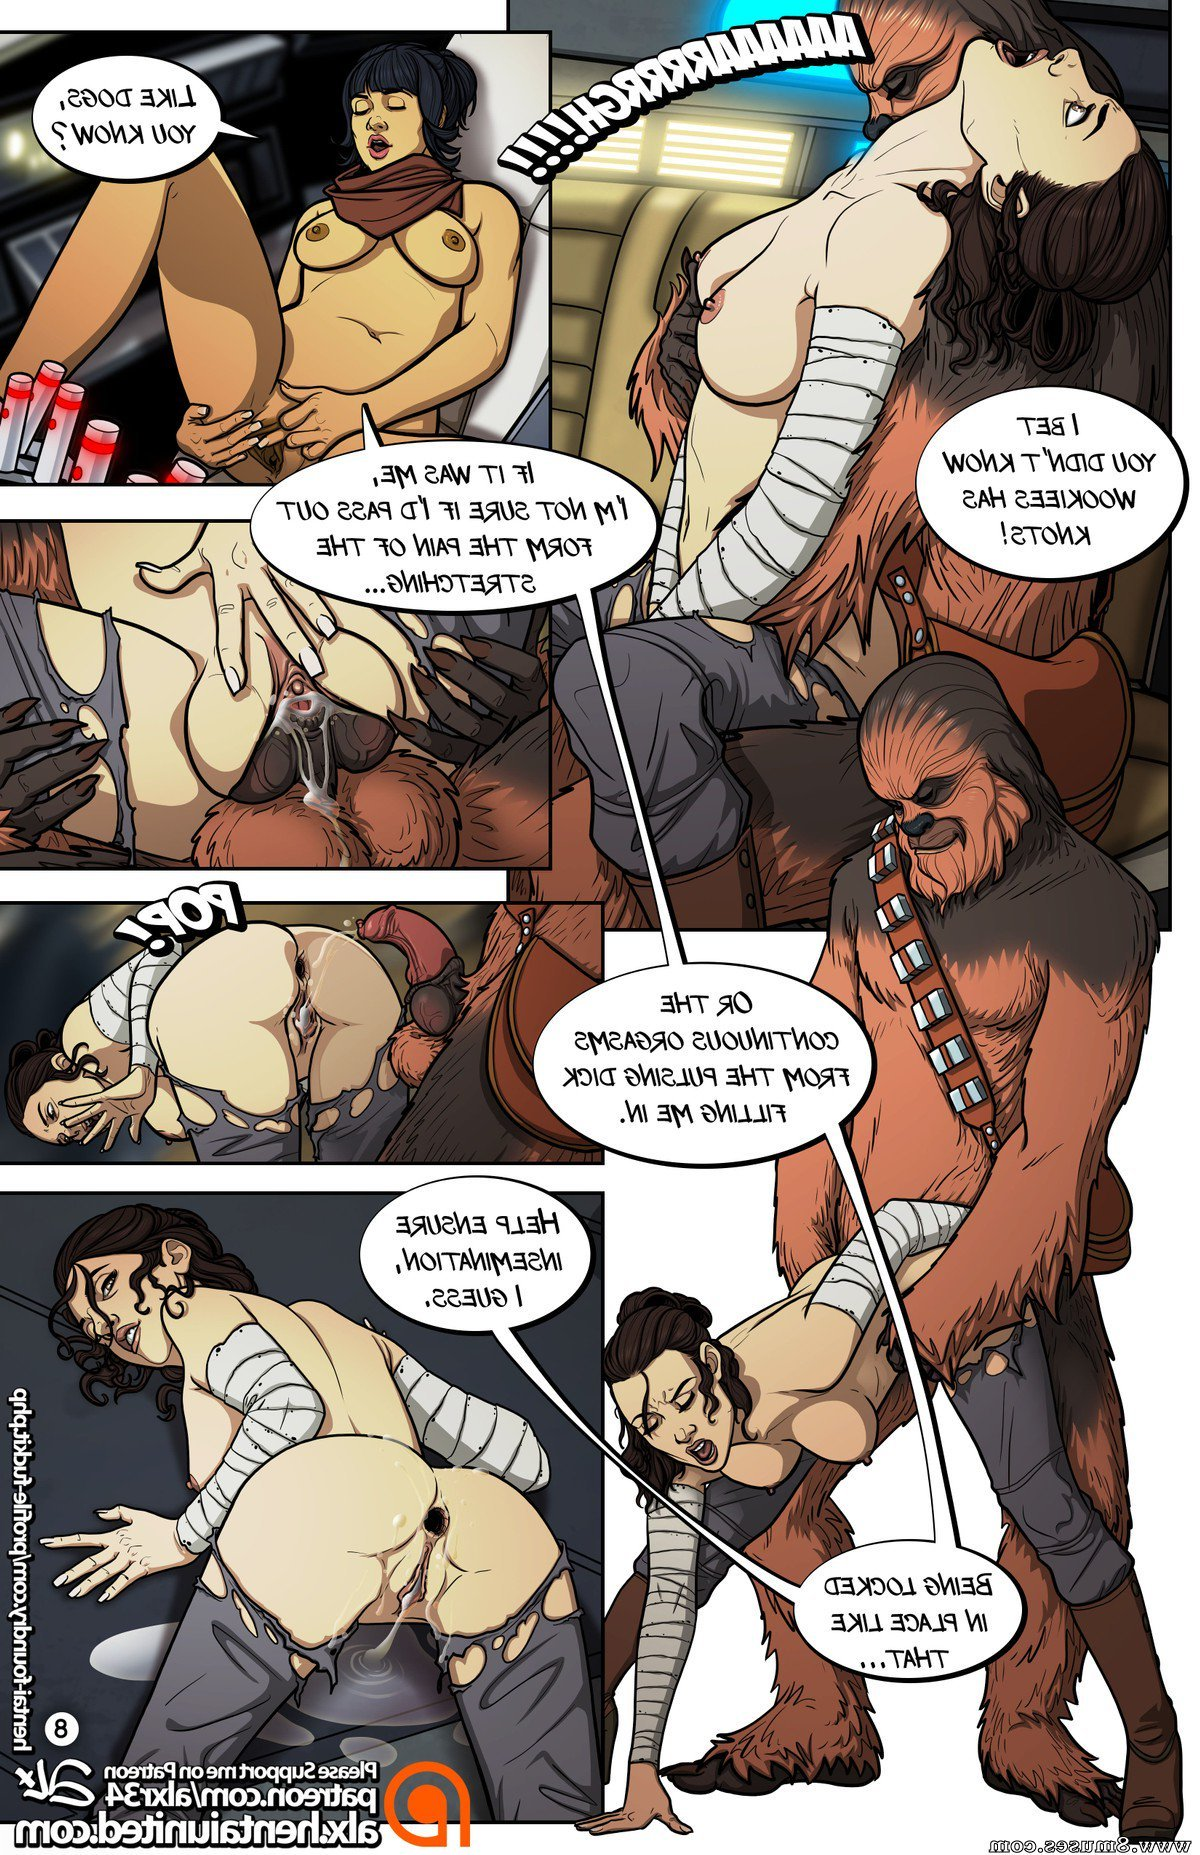 Fuckit-Alx-Comics/A-Complete-Guide-to-Wookie-Sex/Issue-1 A_Complete_Guide_to_Wookie_Sex_-_Issue_1_9.jpg